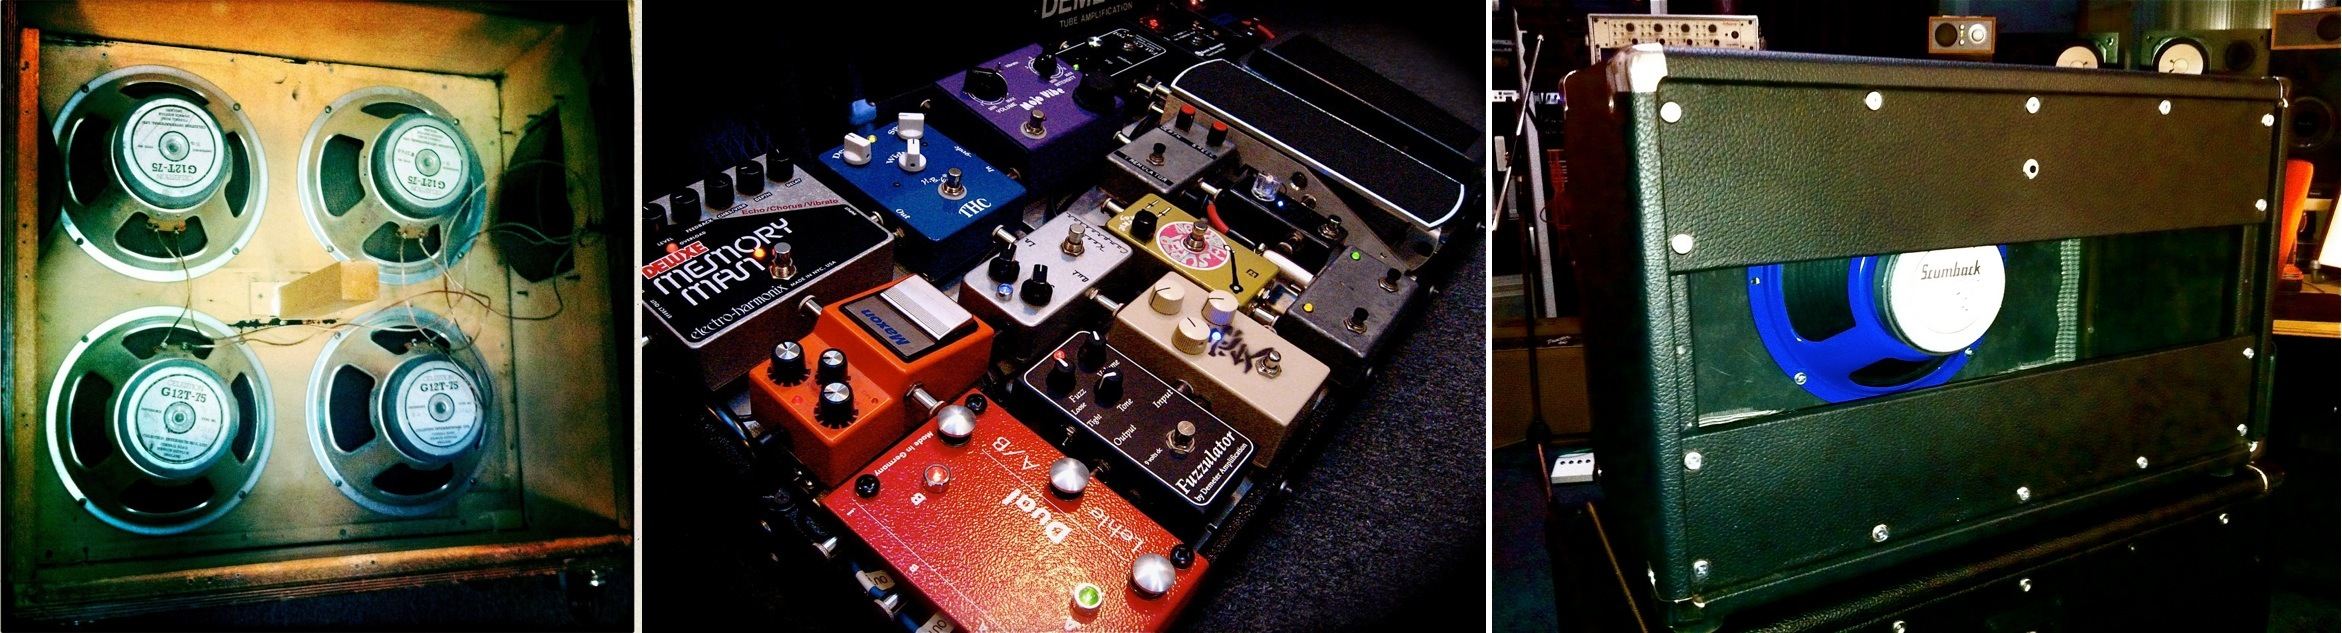 Cabs+Pedalboard-3 views.jpg